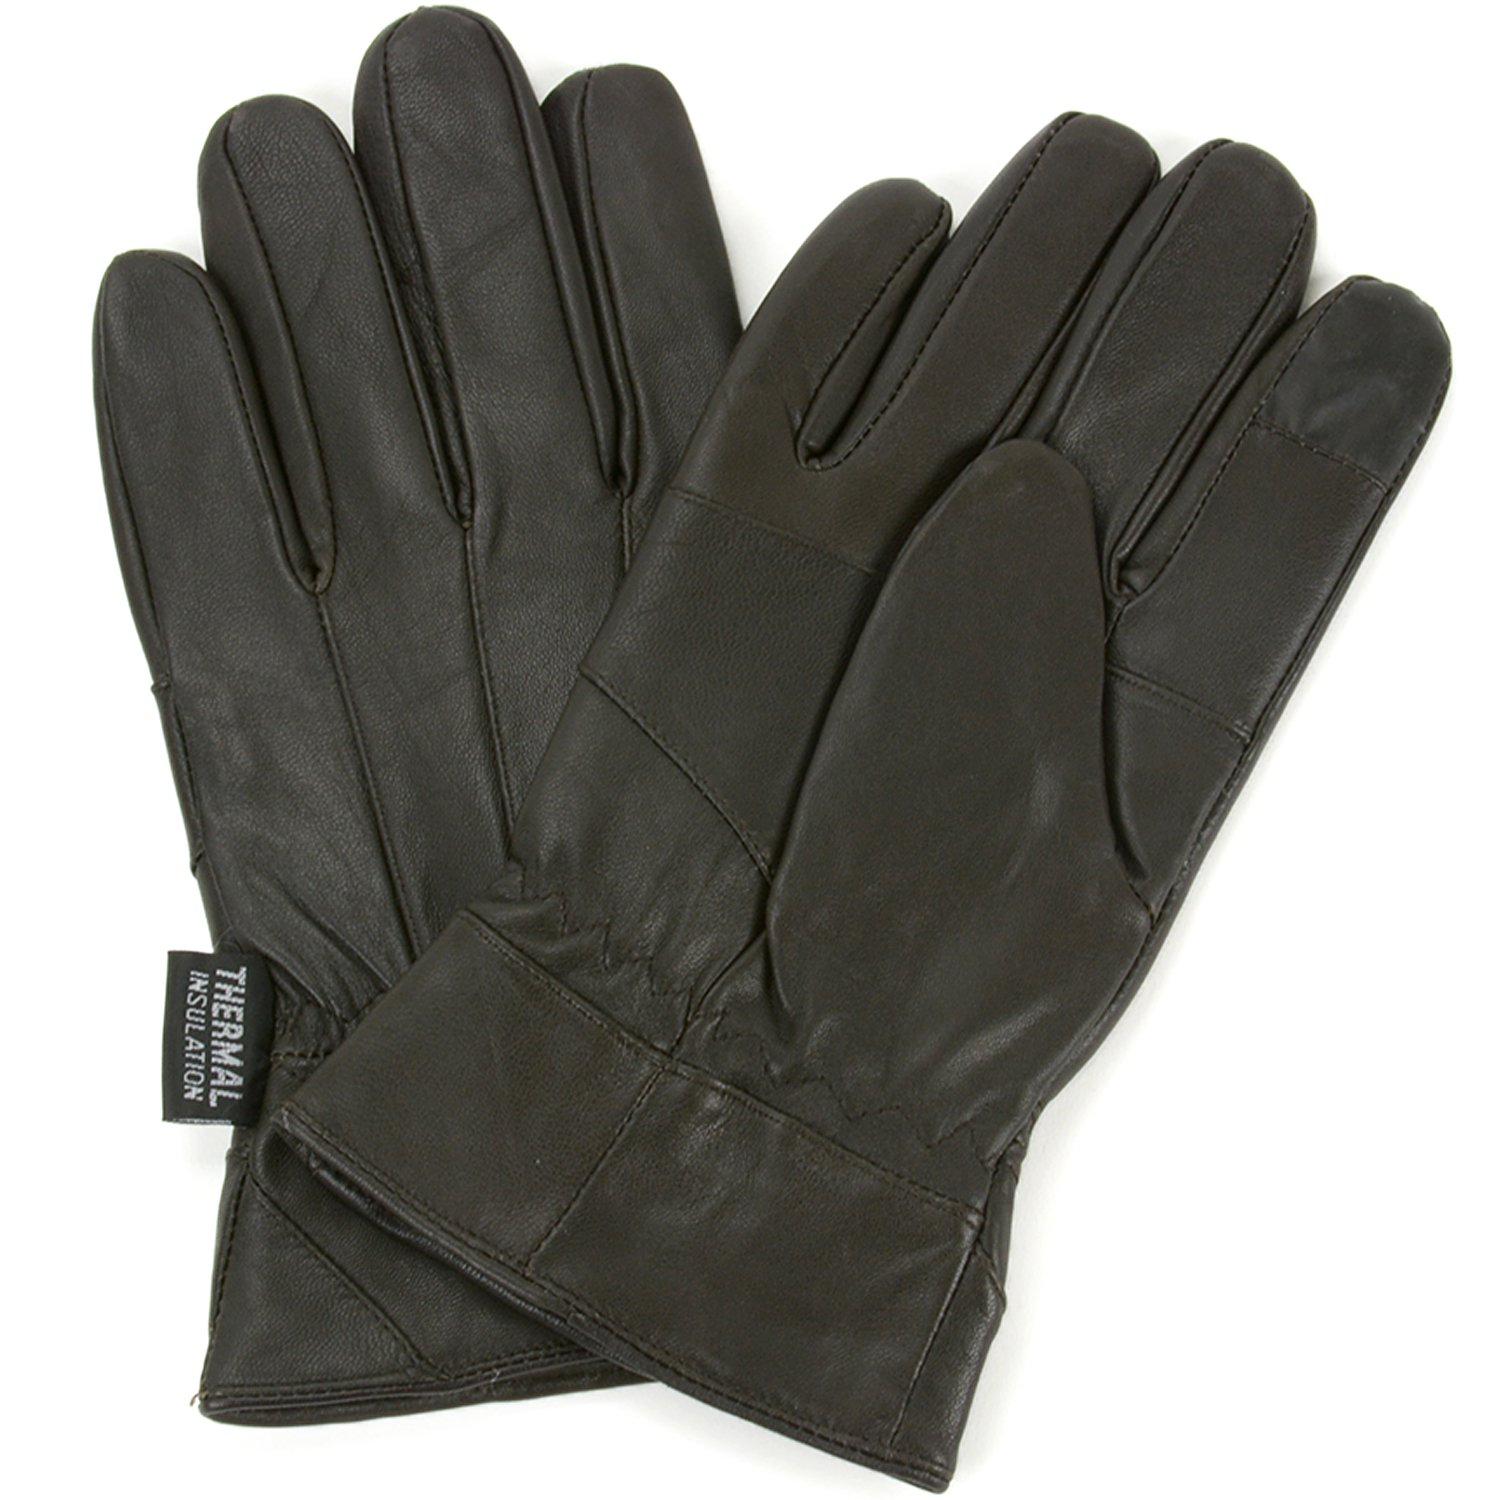 Insulated leather motorcycle gloves - Alpine Swiss Mens Touch Screen Gloves Leather Thermal Lined Phone Texting Gloves At Amazon Men S Clothing Store